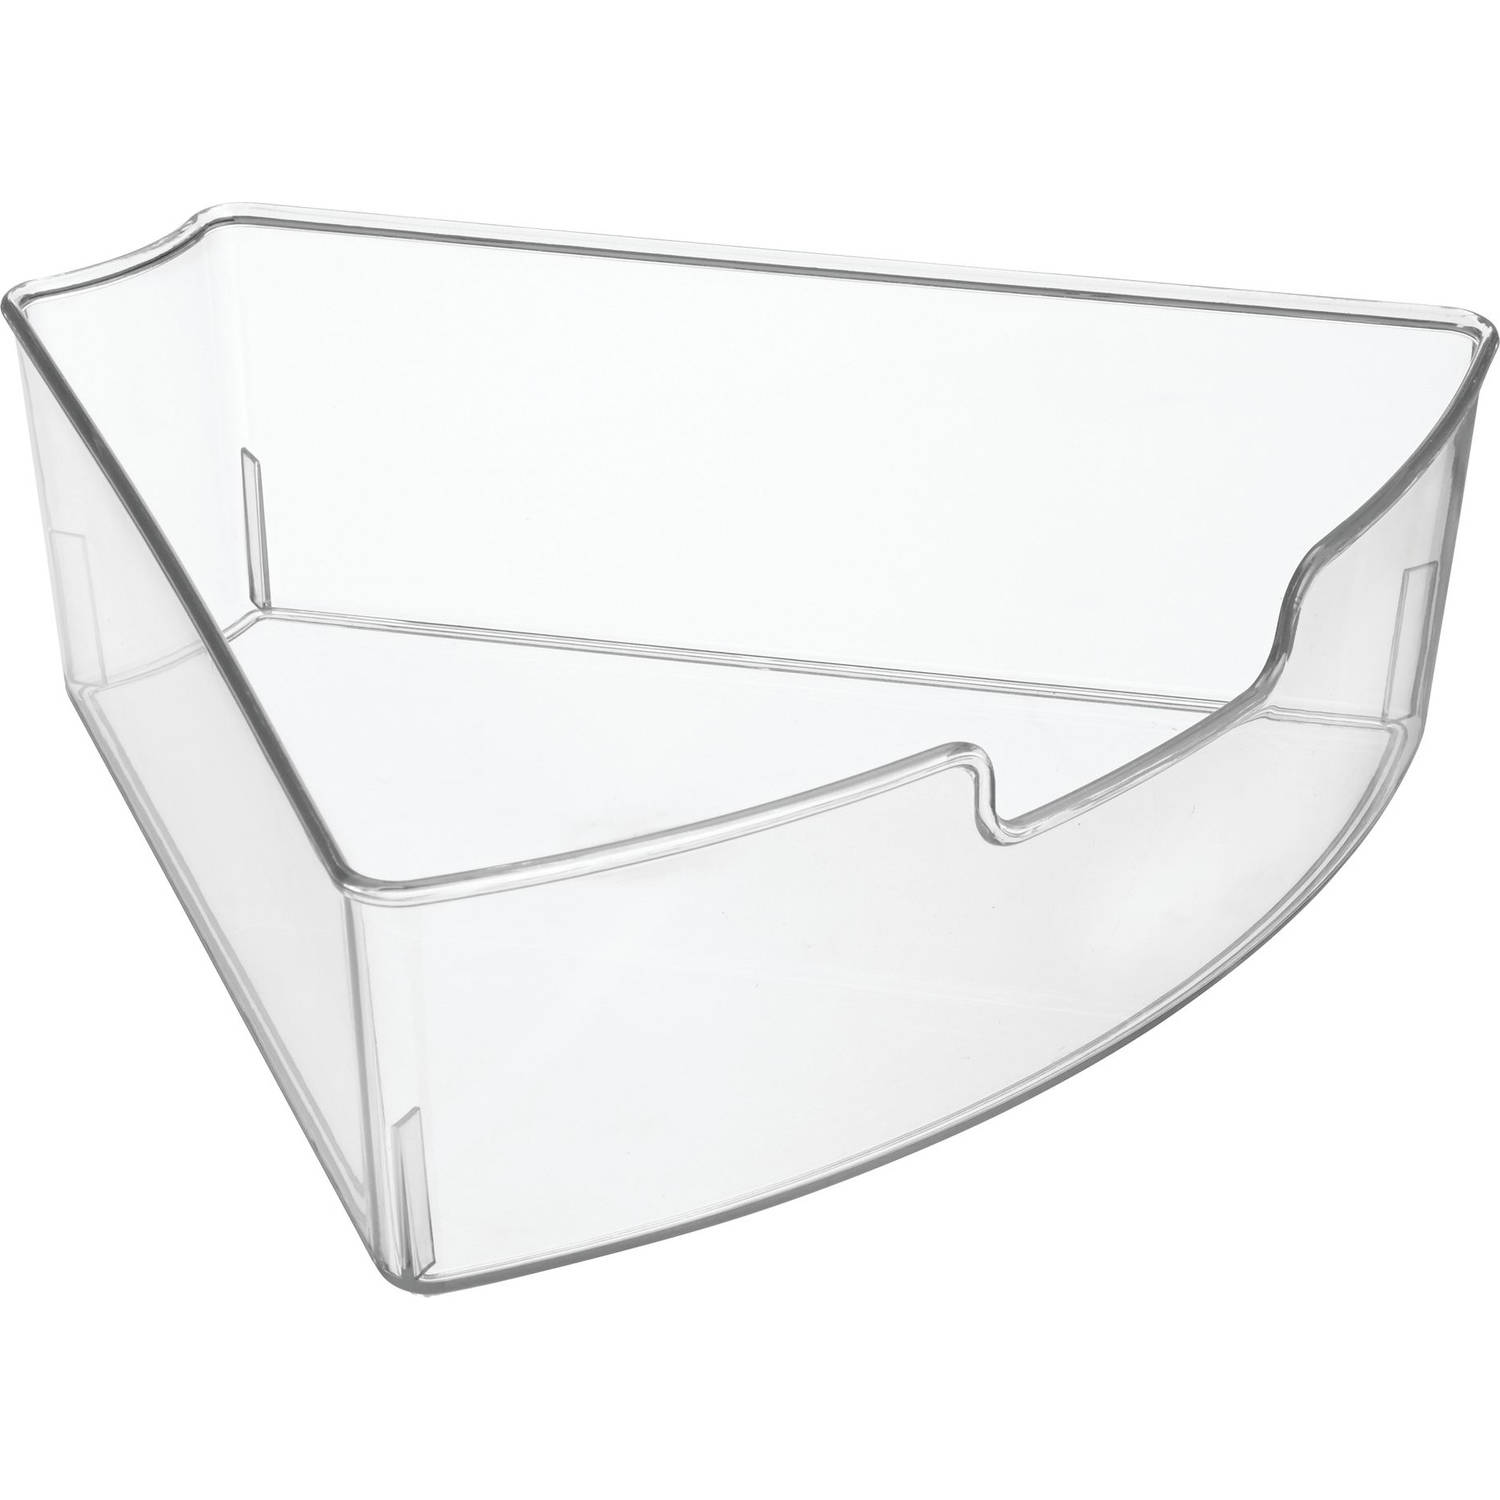 White Kitchen Bin interdesign lazy susan kitchen bin, clear, 1/6 wedge - walmart